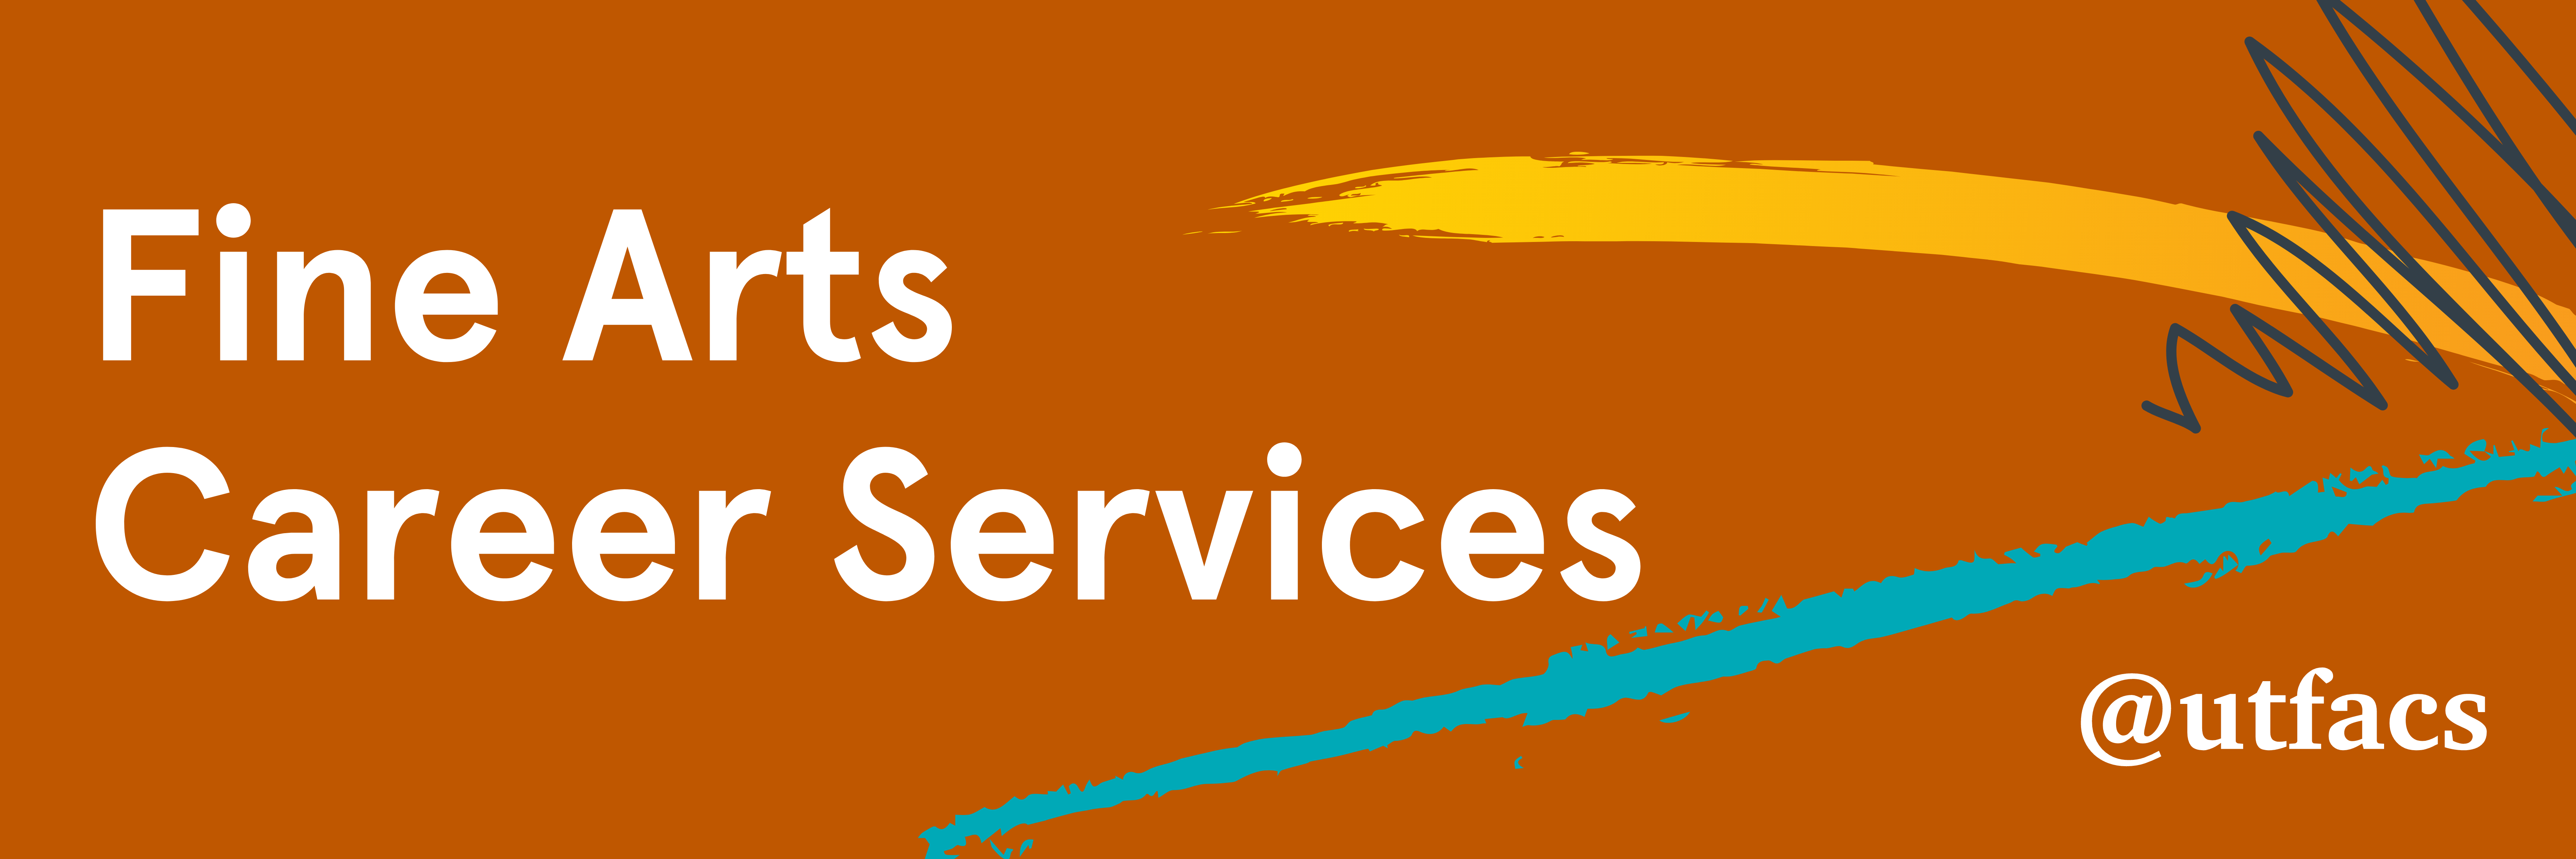 Fine Arts Career Services title graphic. Includes social media link @utfacs